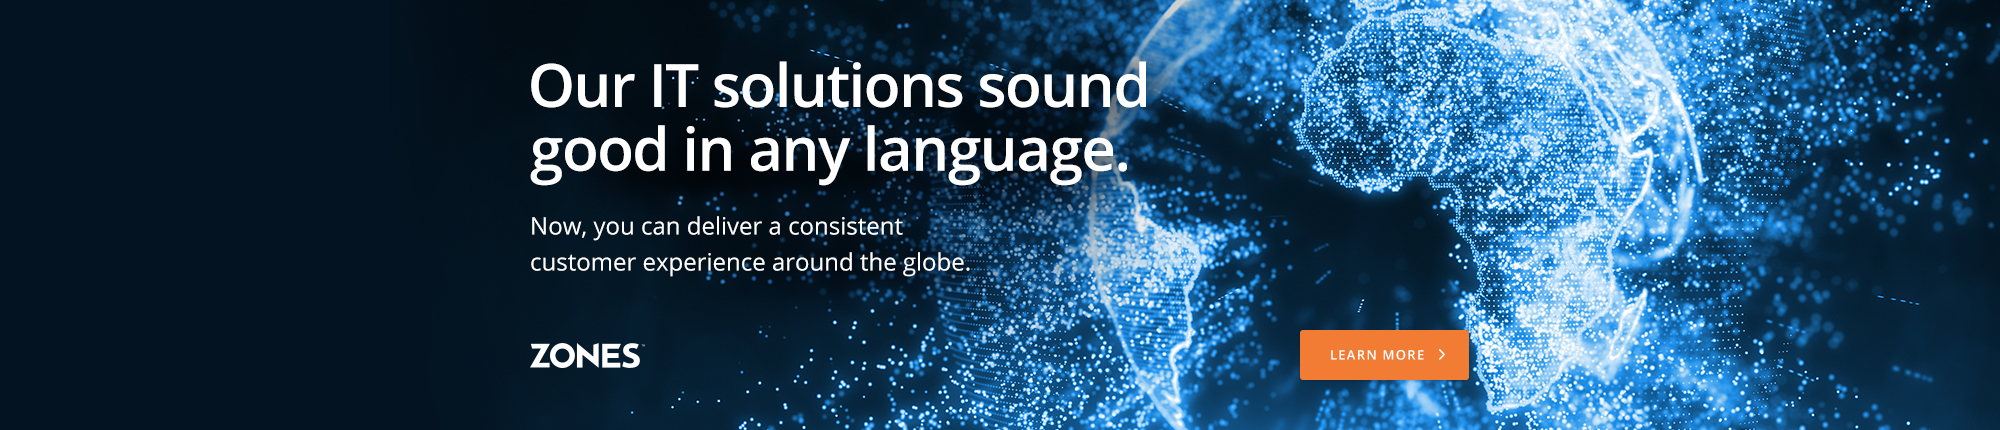 Our IT solutions sound good in any language. Now, you can deliver a consistent customer experience around the globe.